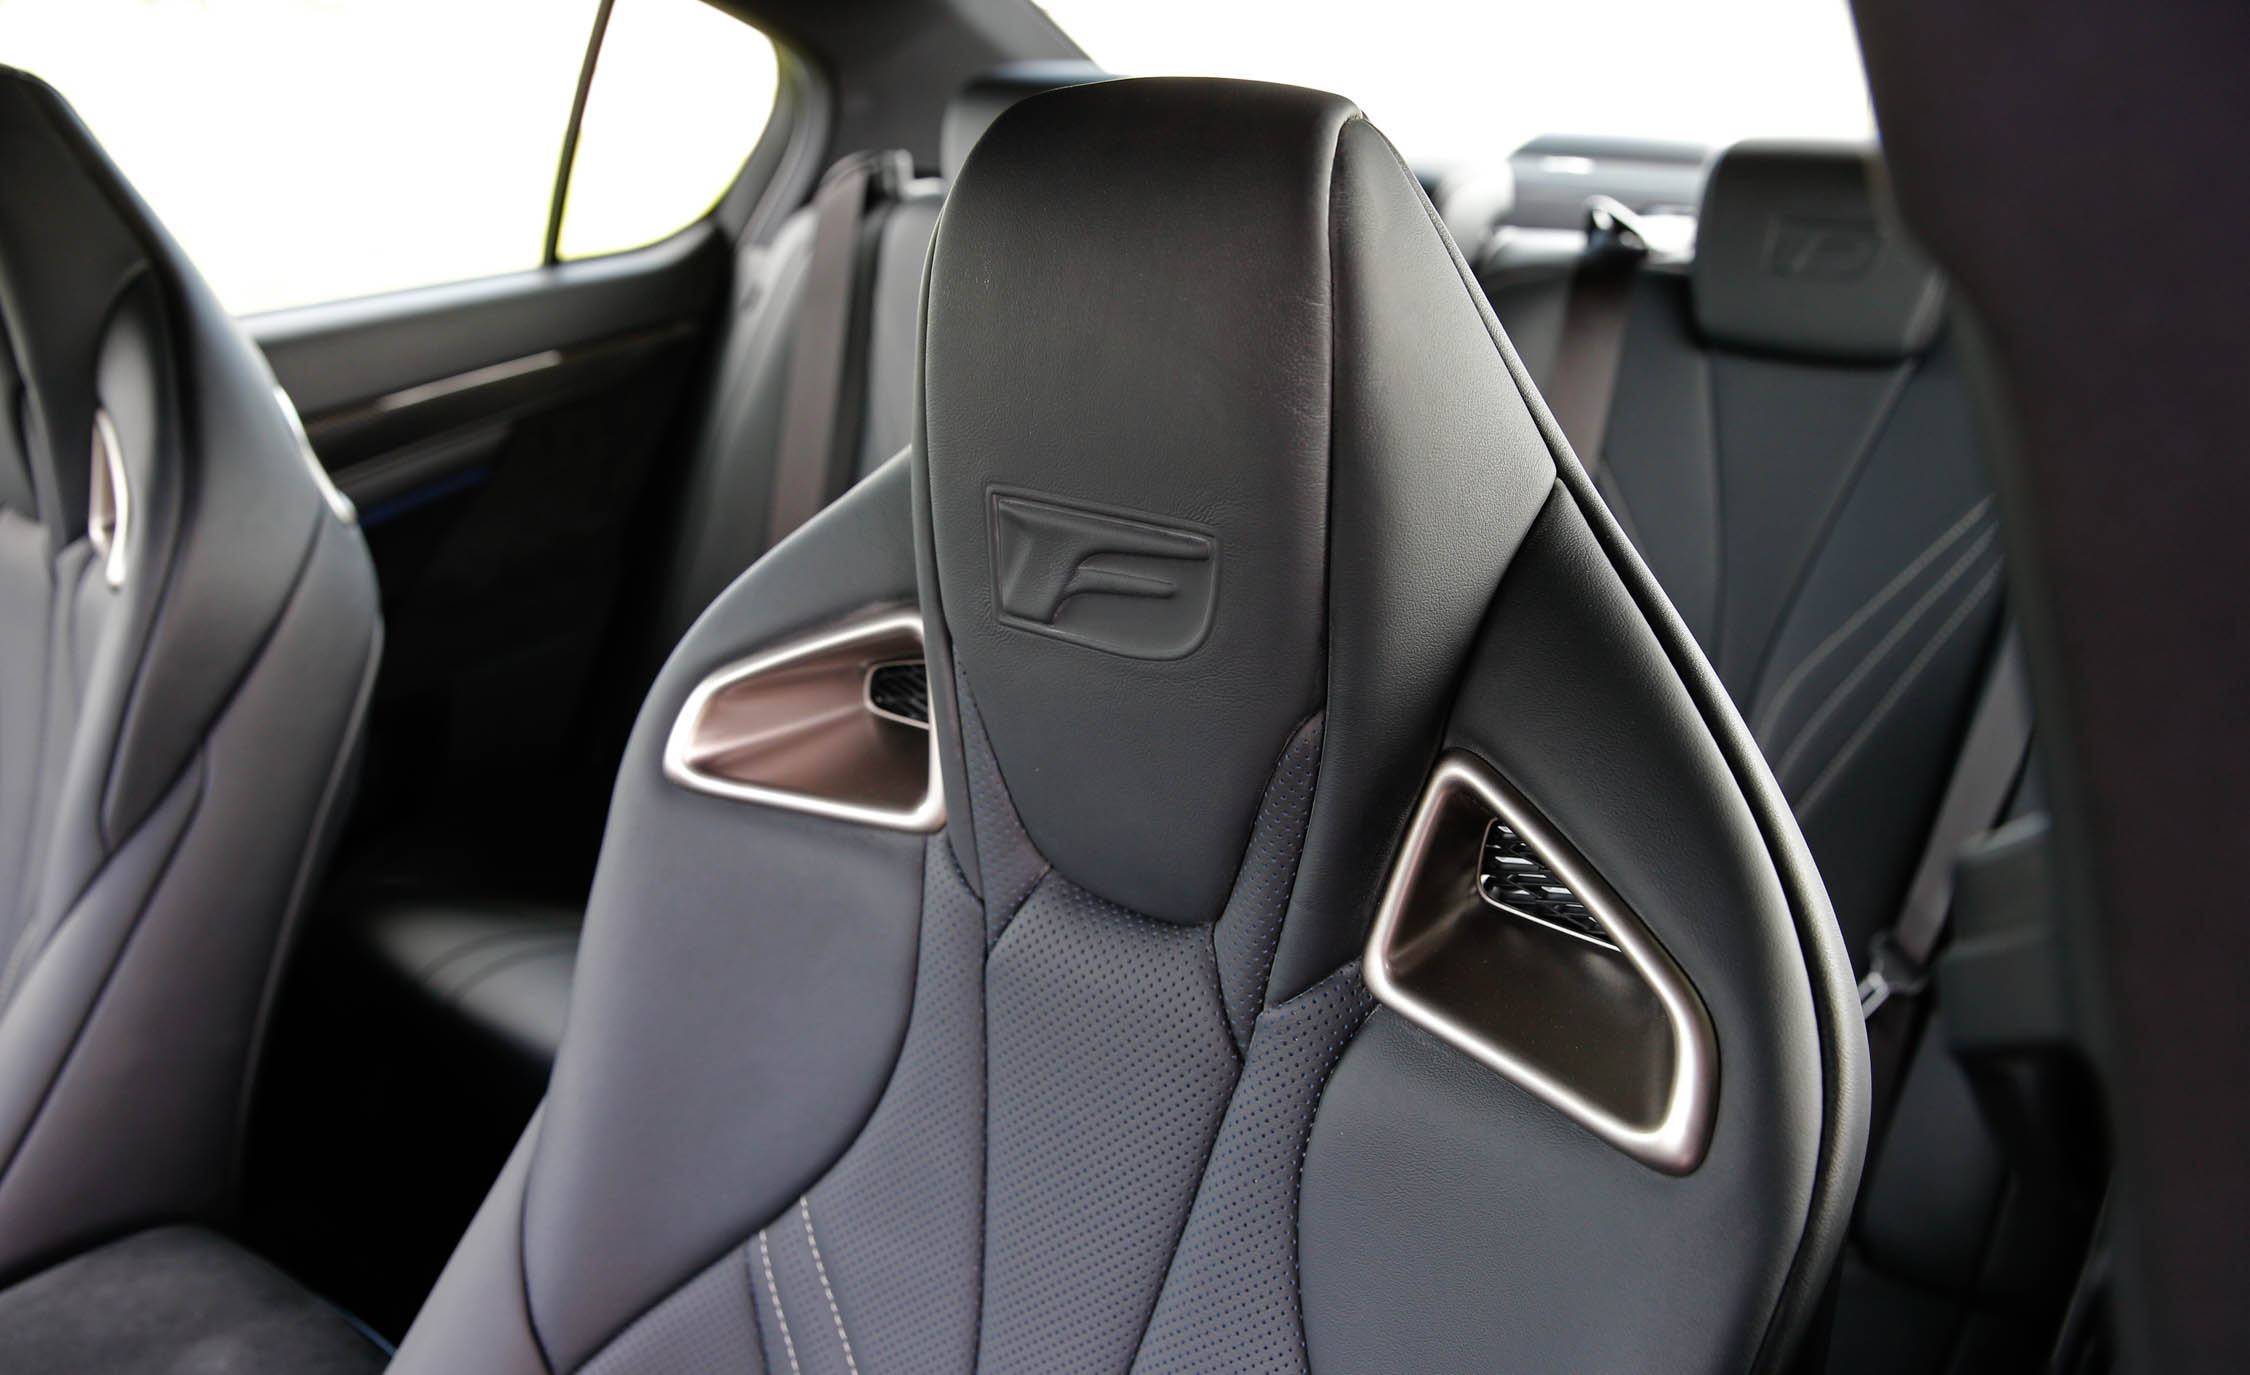 2016 Lexus Gs F Interior Seats Front (View 8 of 20)